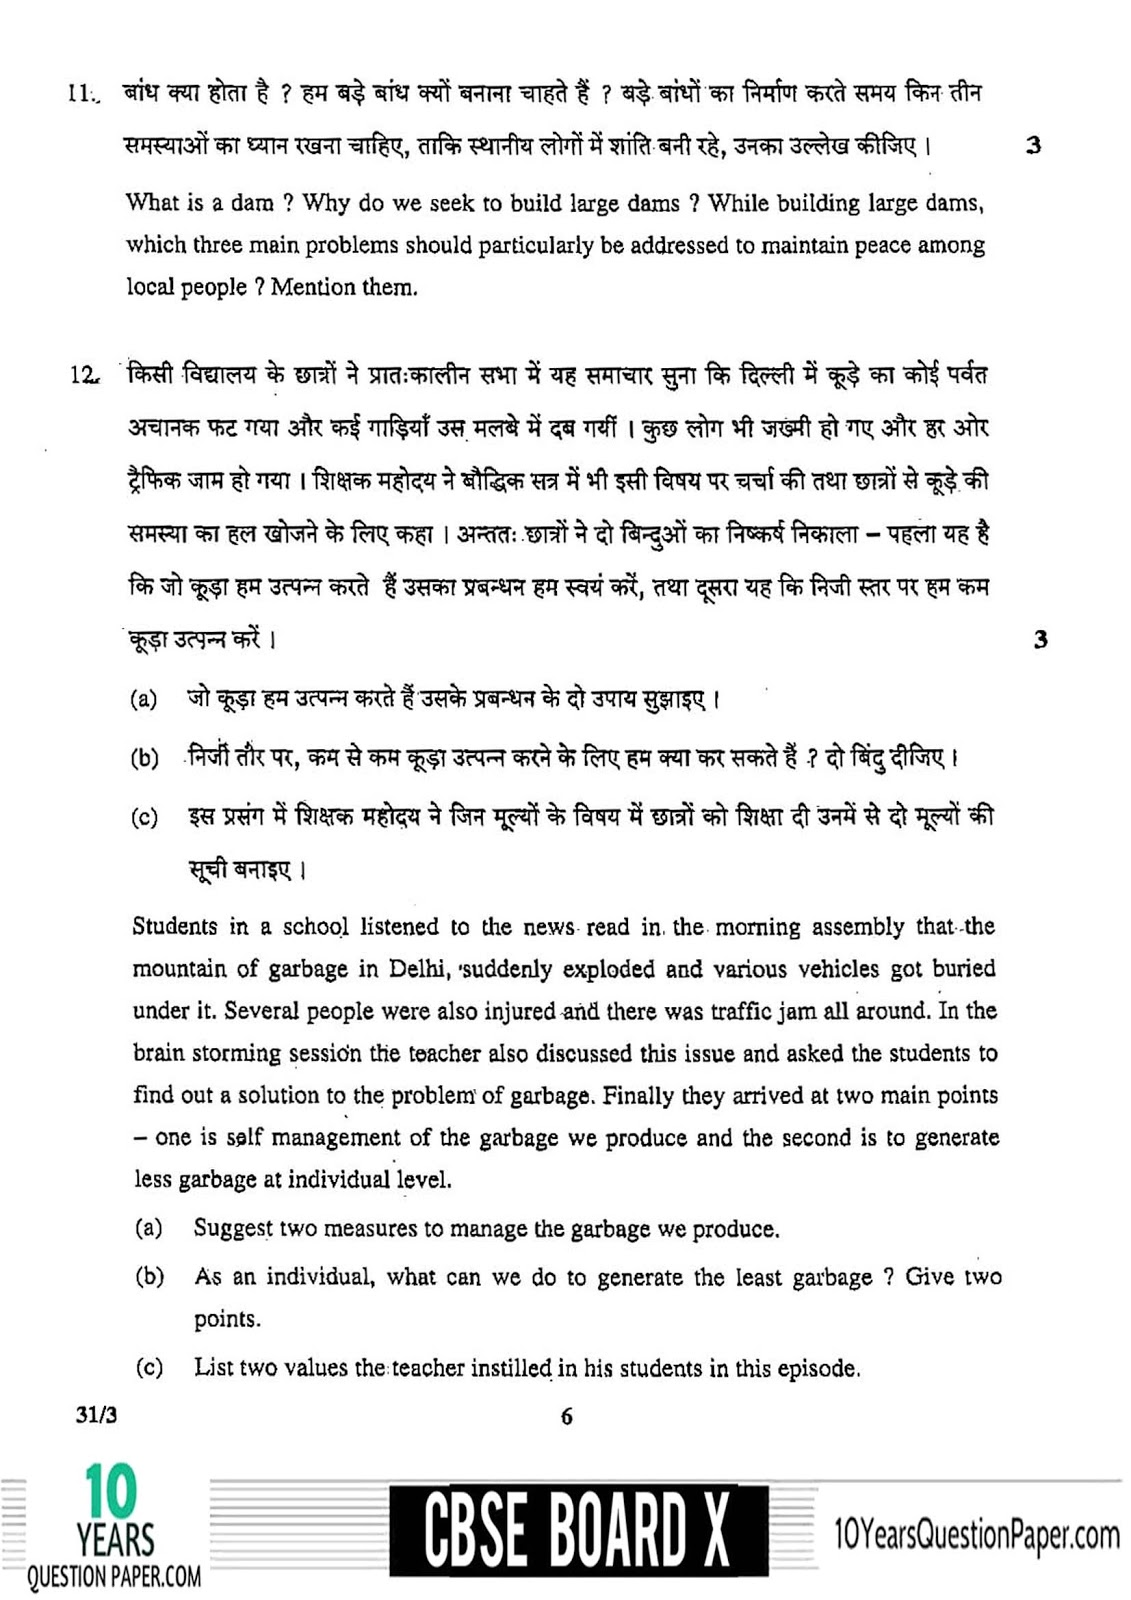 Cbse Science Question Paper For Class 10